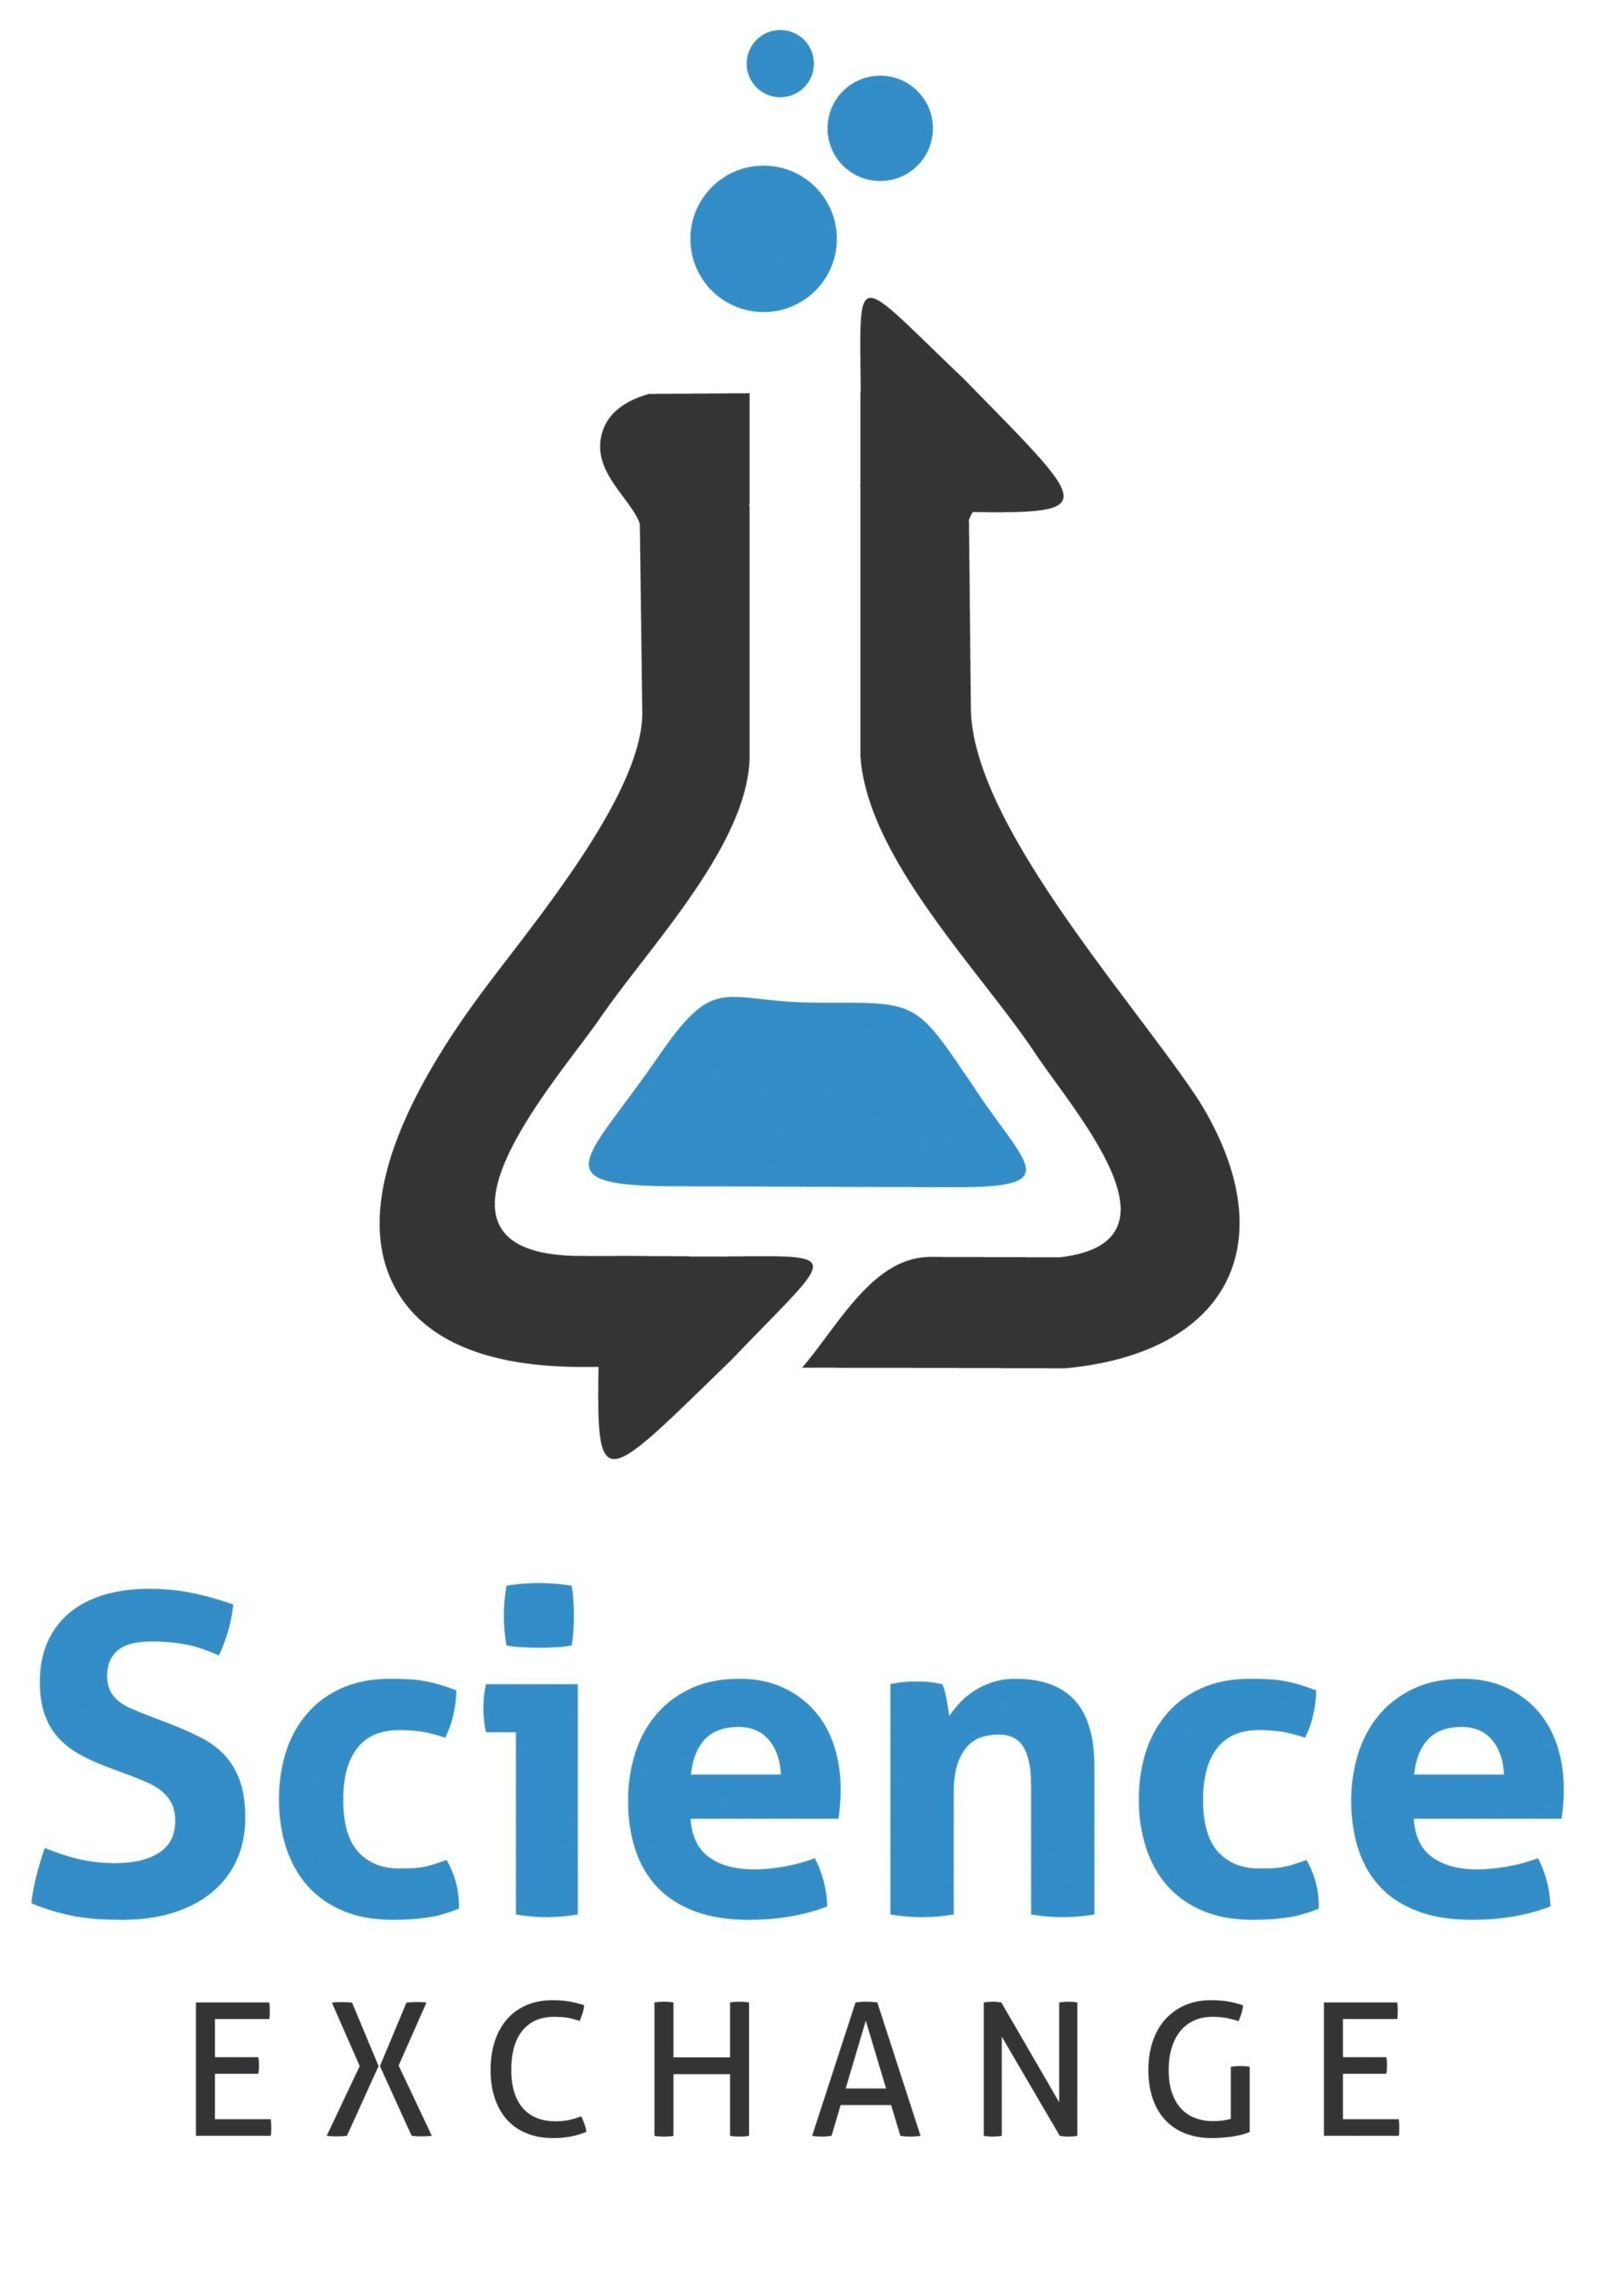 Science Exchange is the world's leading marketplace for outsourced research.